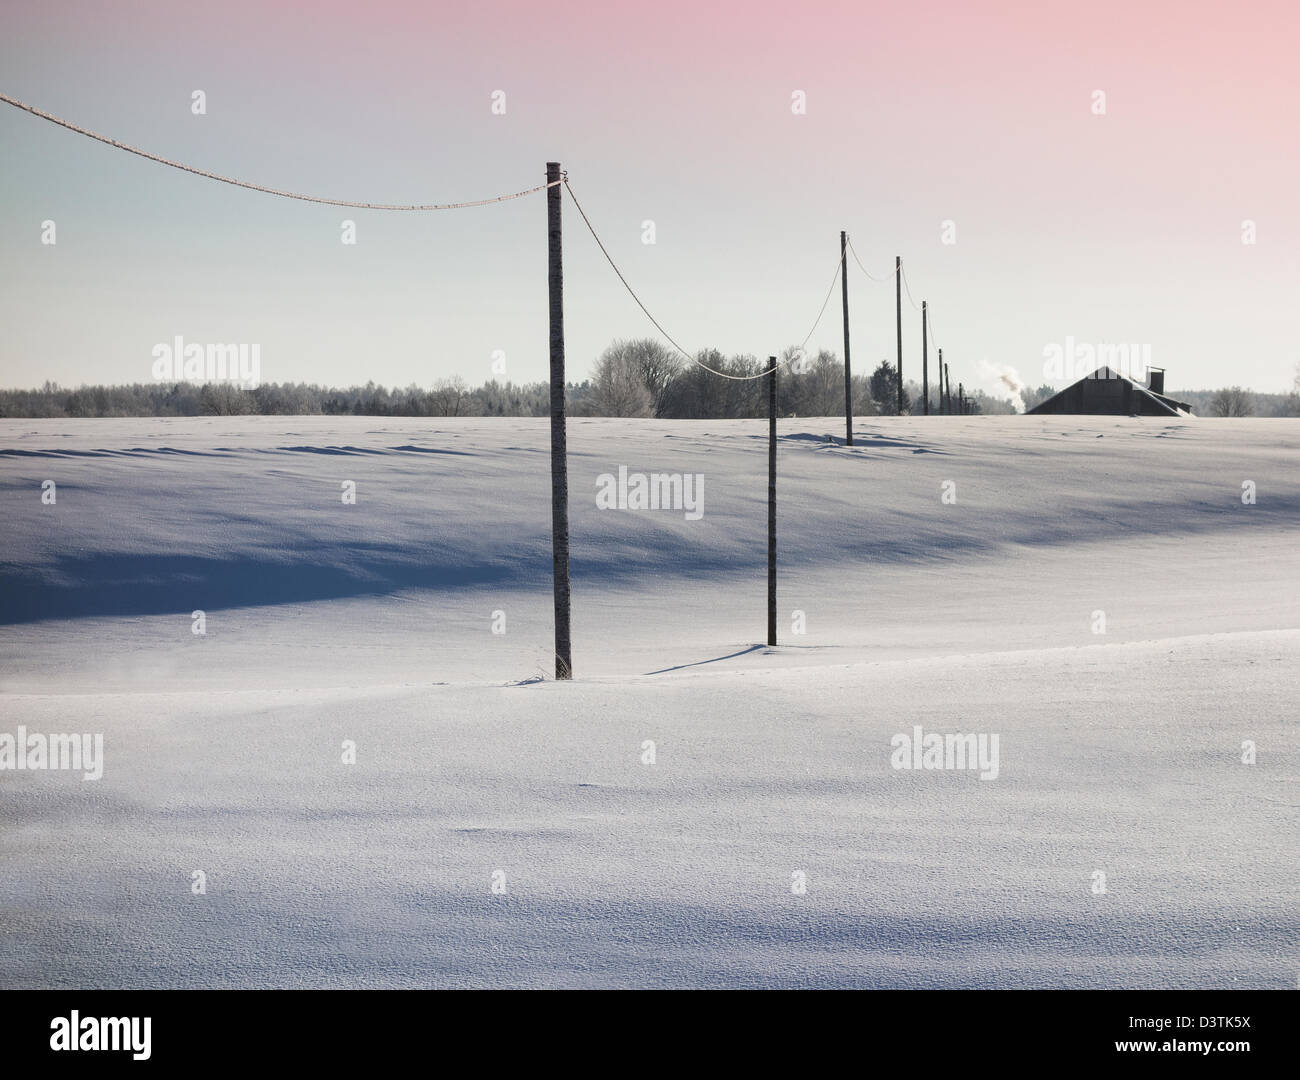 row of wooden electric poles on empty hilly snow covered landscape, engine diagram, landscape electrical wiring